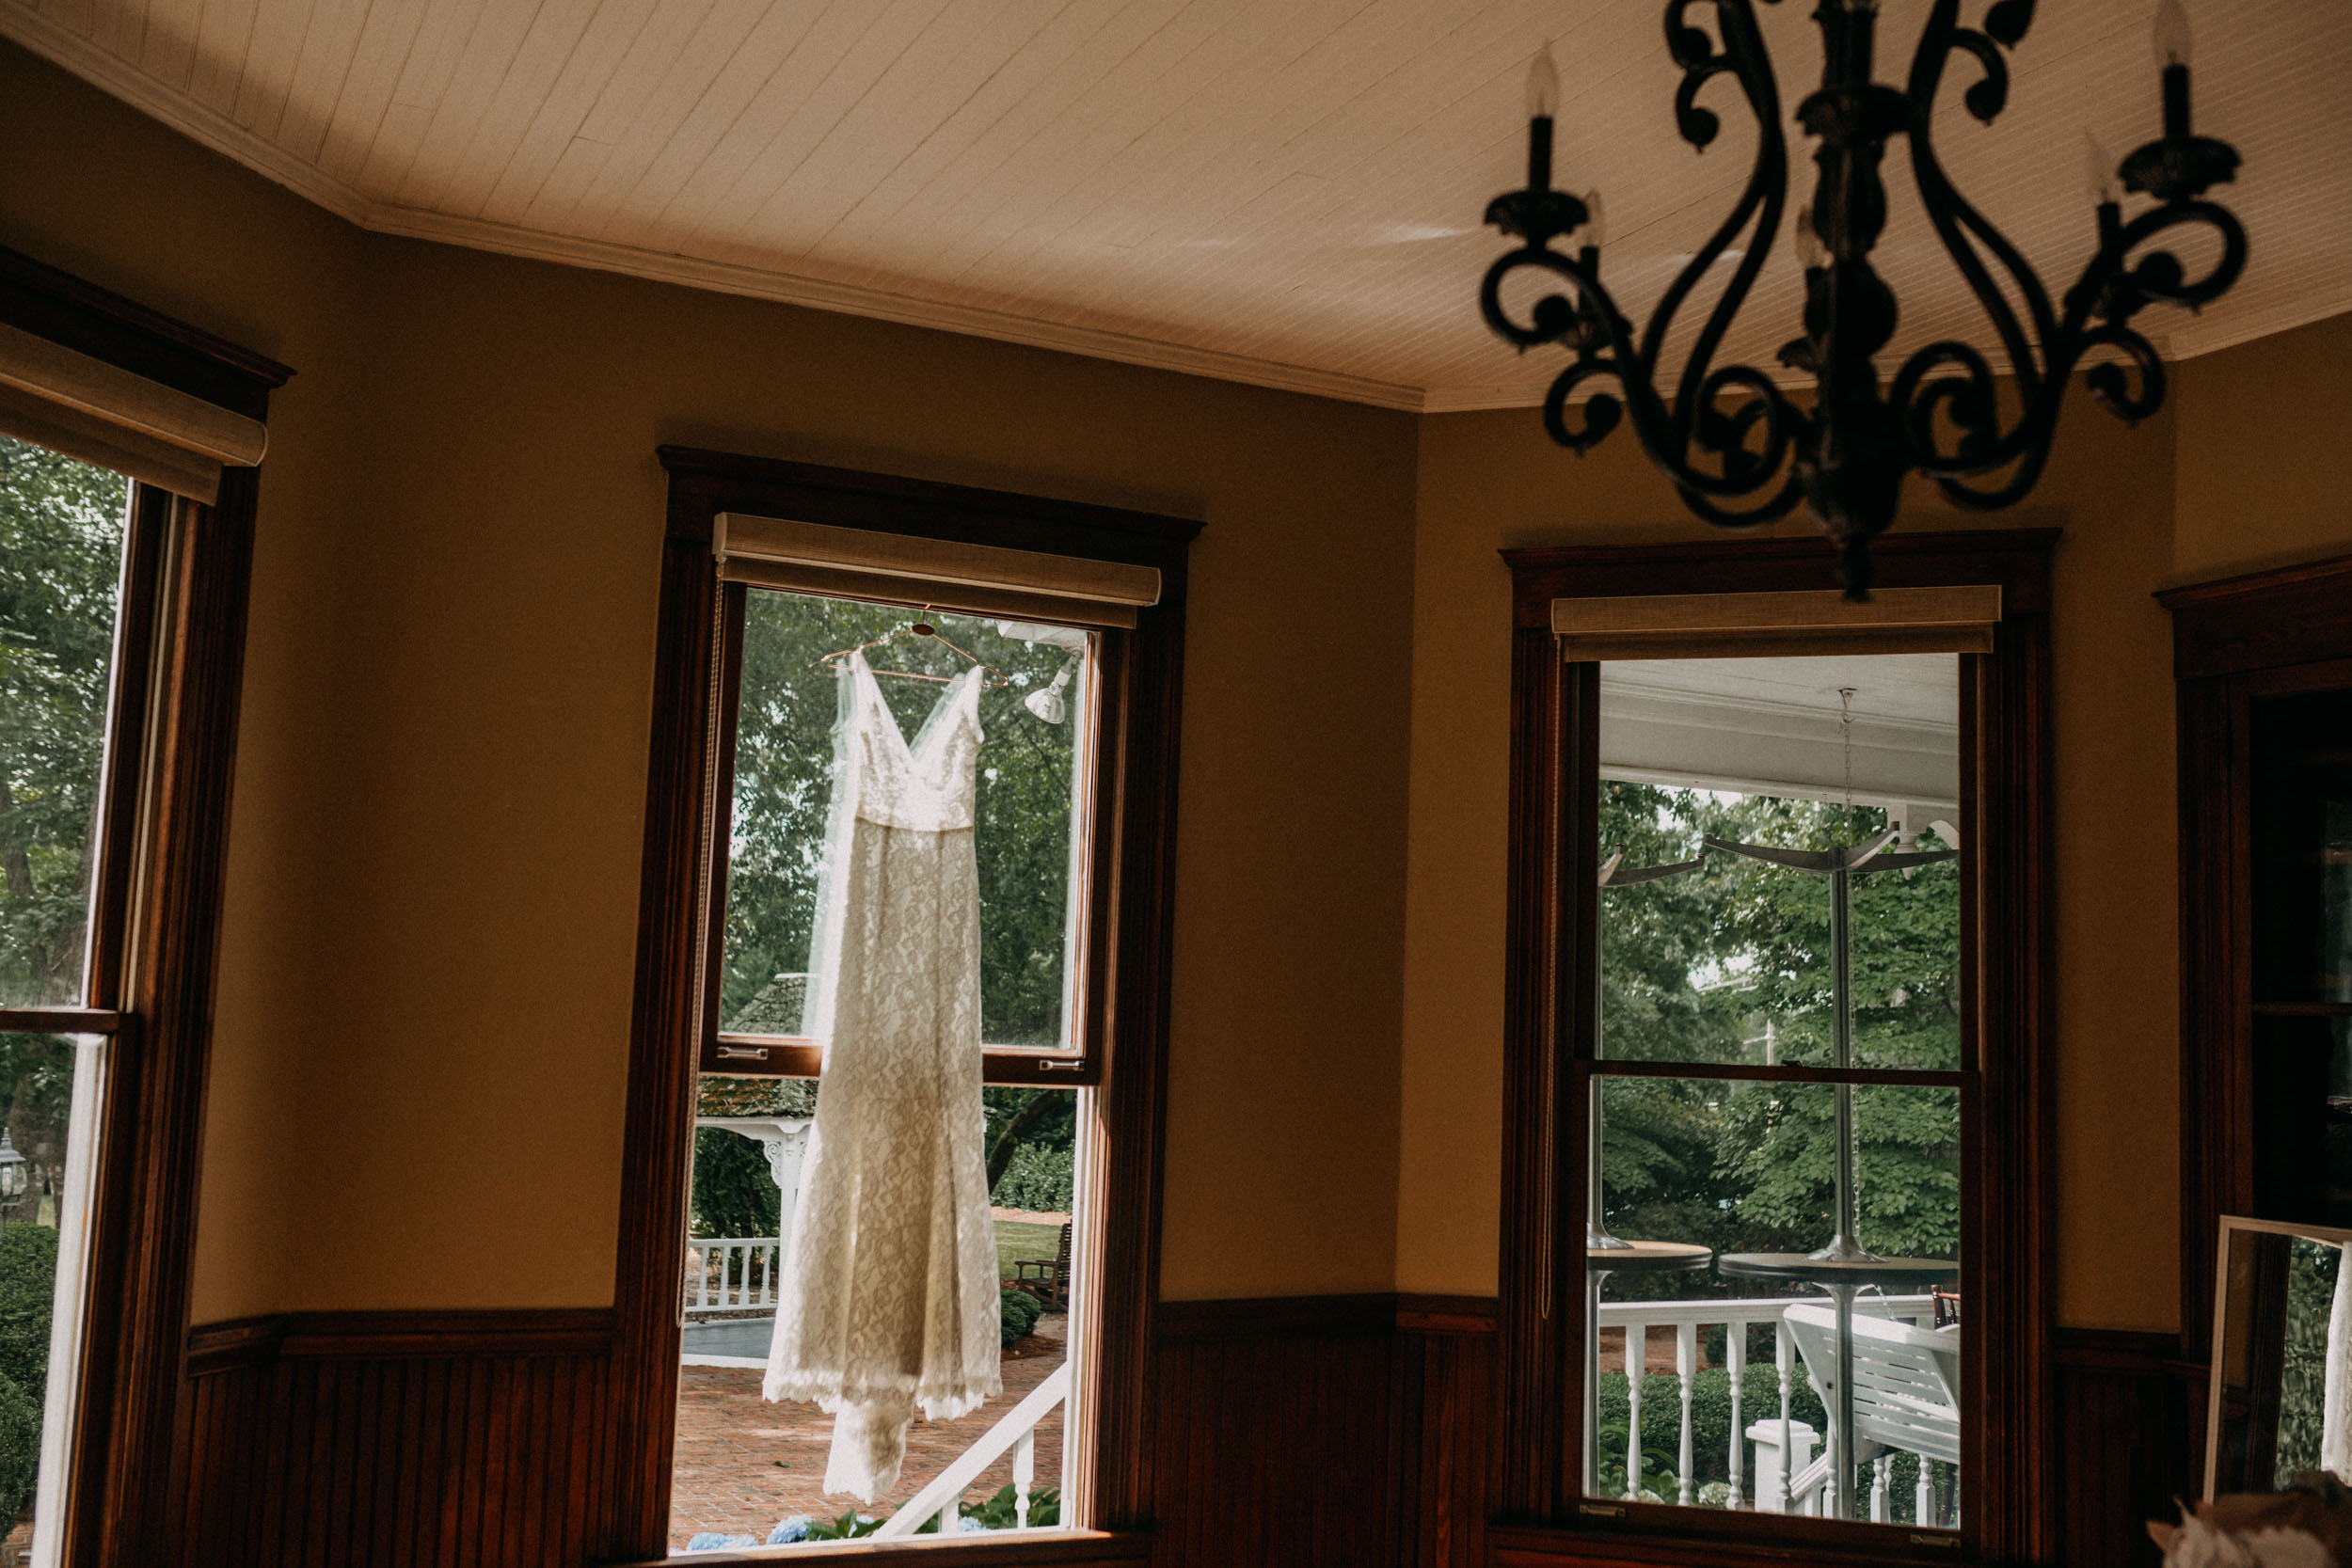 whitehead-manor-wedding-charlotte-nc-shellie-jarrett007.jpg